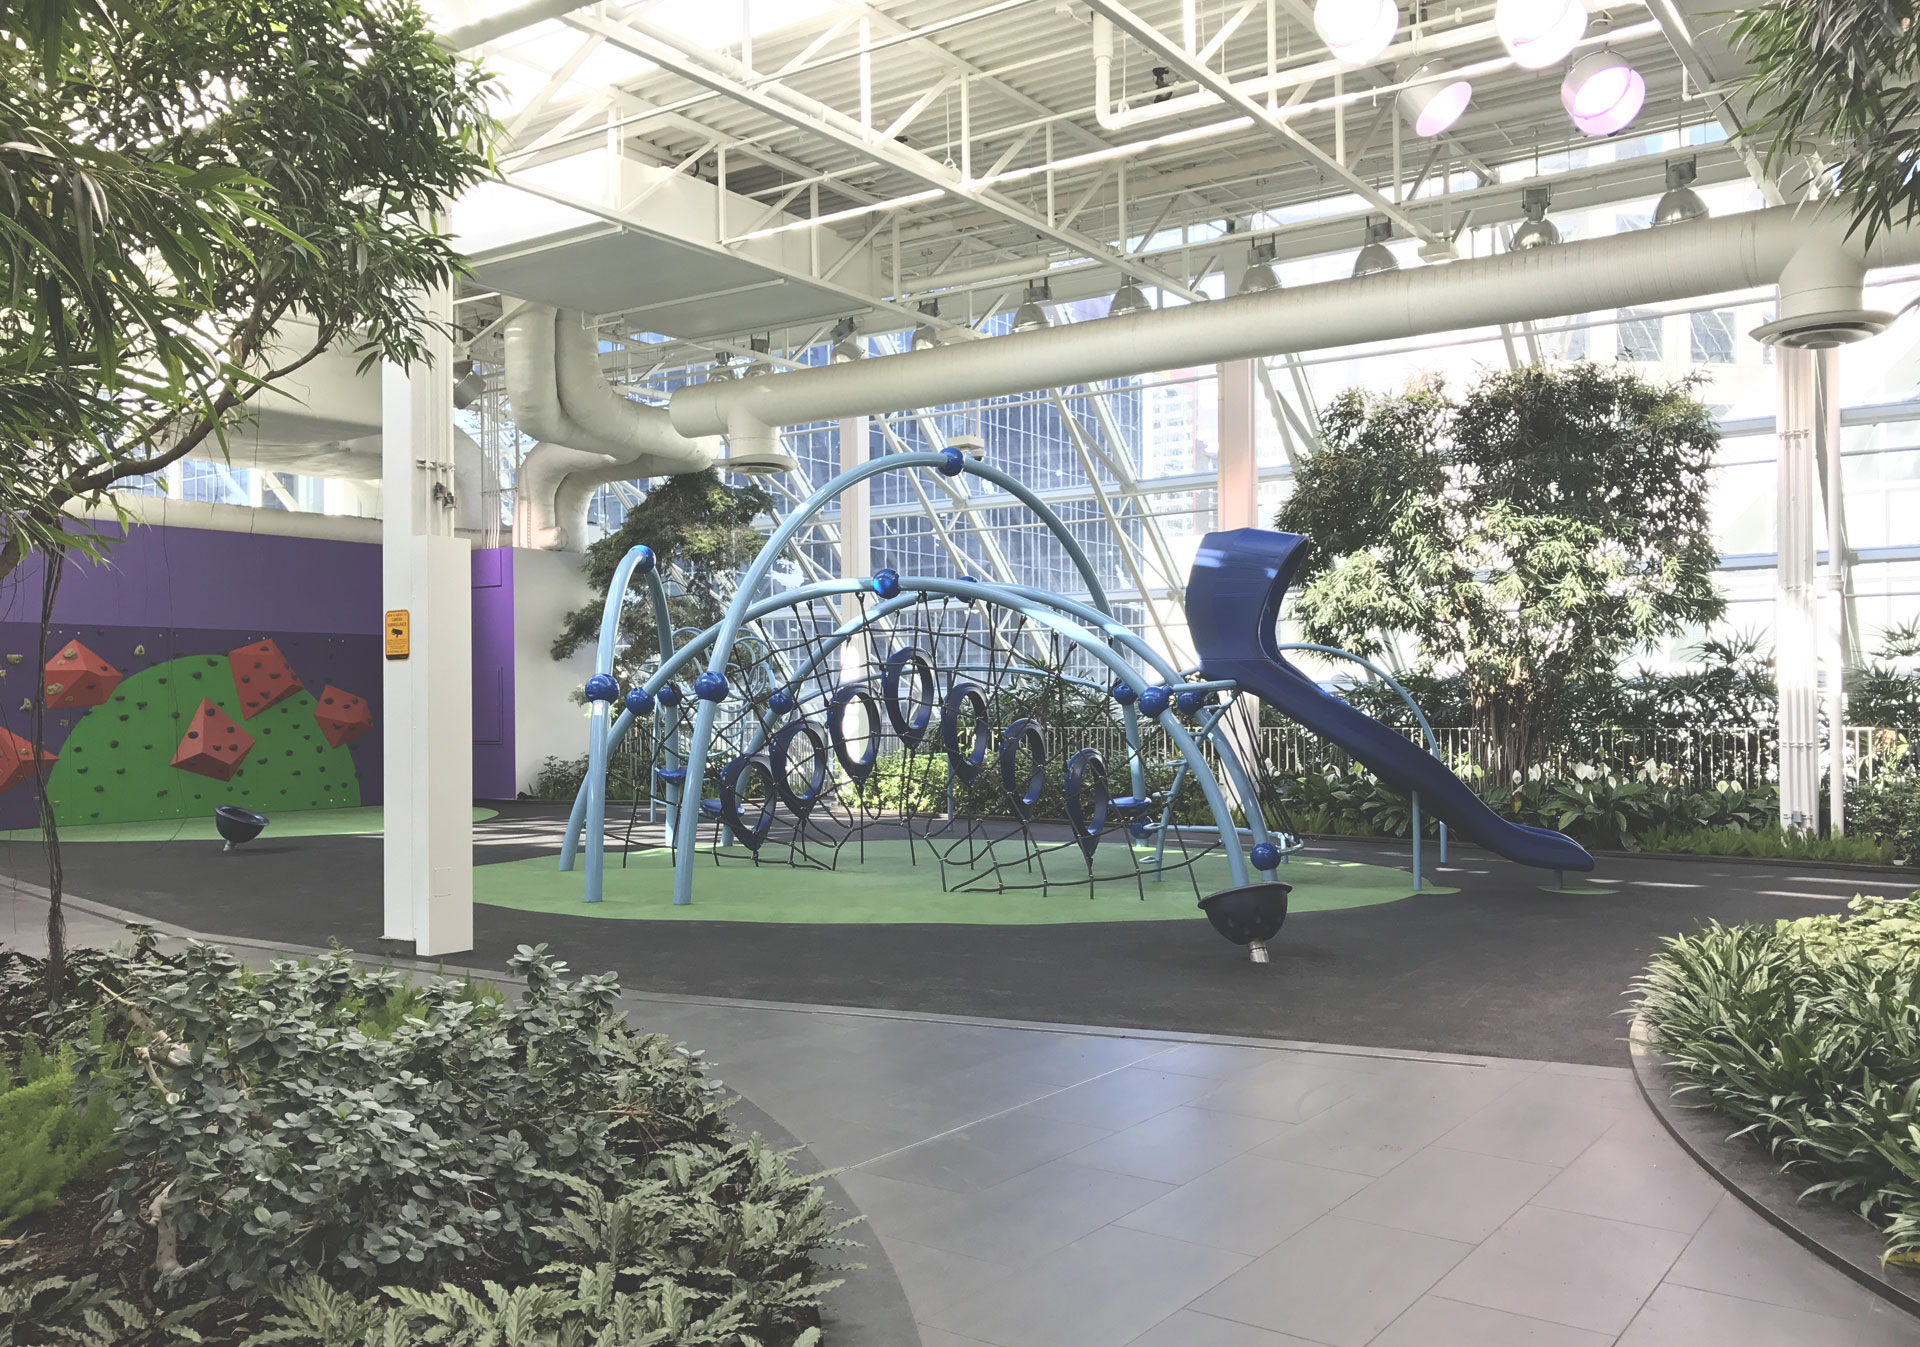 Let your kids enjoy the fun at the playground in the Devonian Gardens.